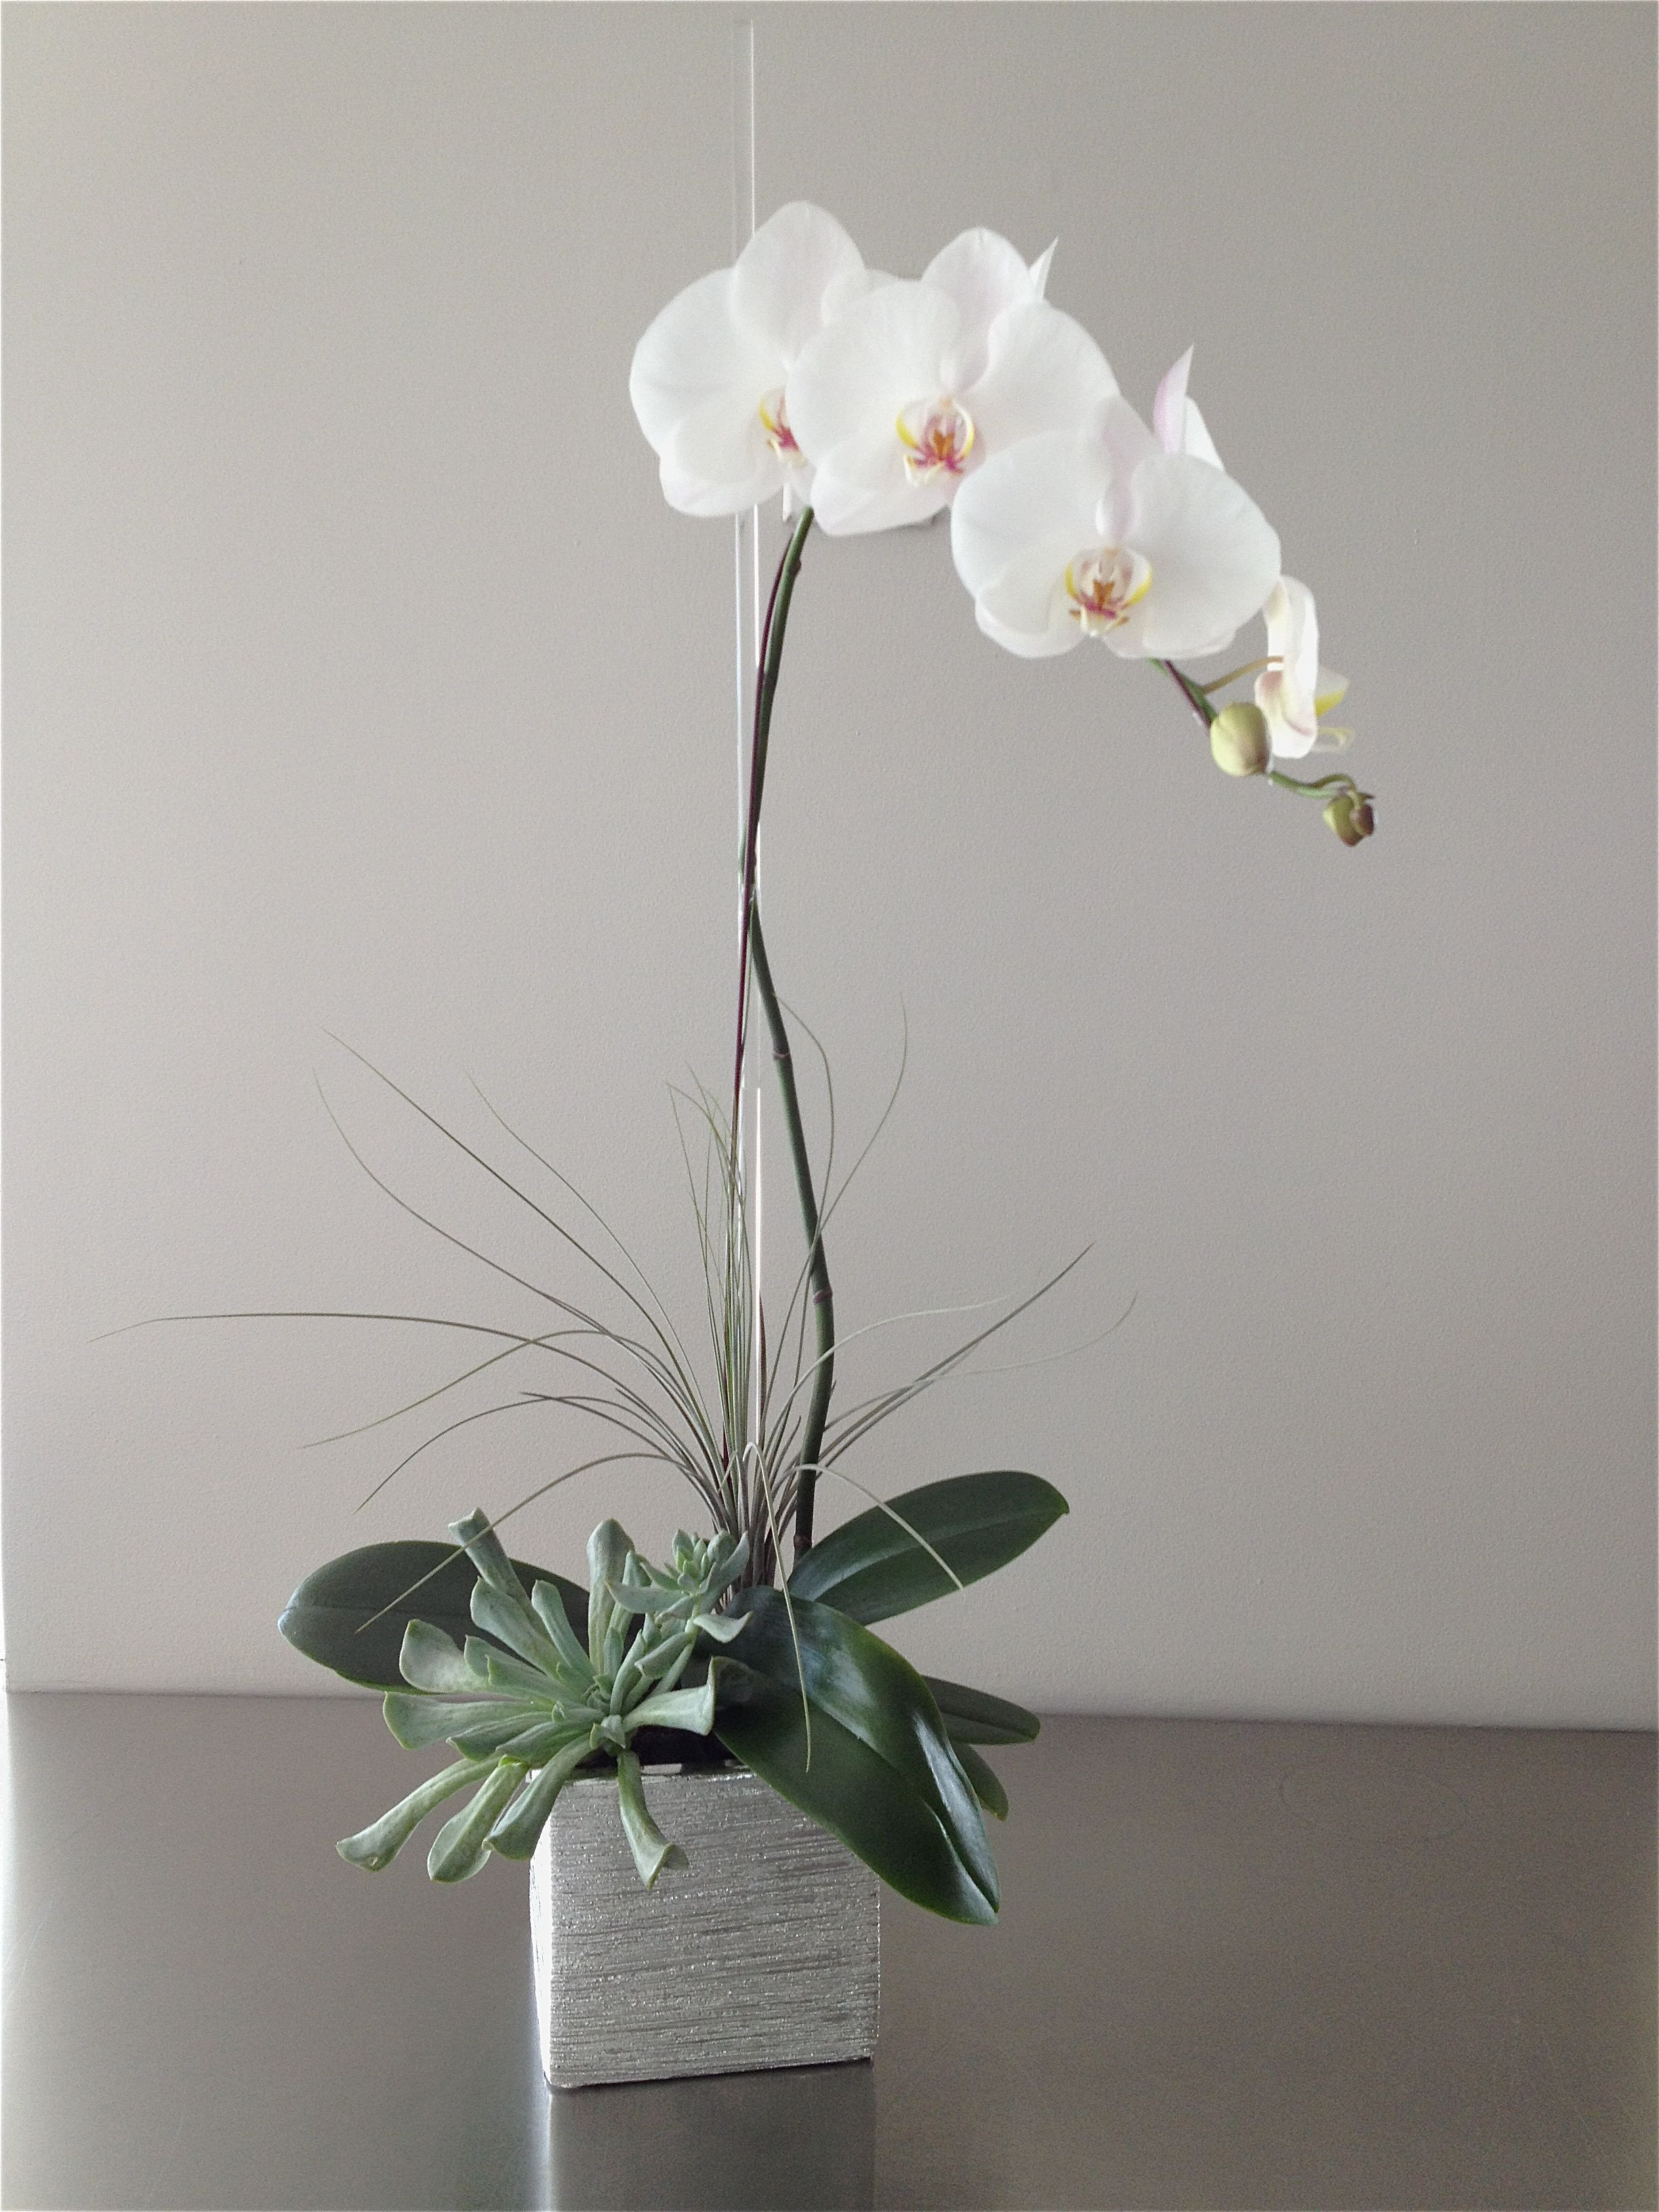 The Silver Orchid a classic white orchid plant with tropical and succulent accents in a silver ceramic